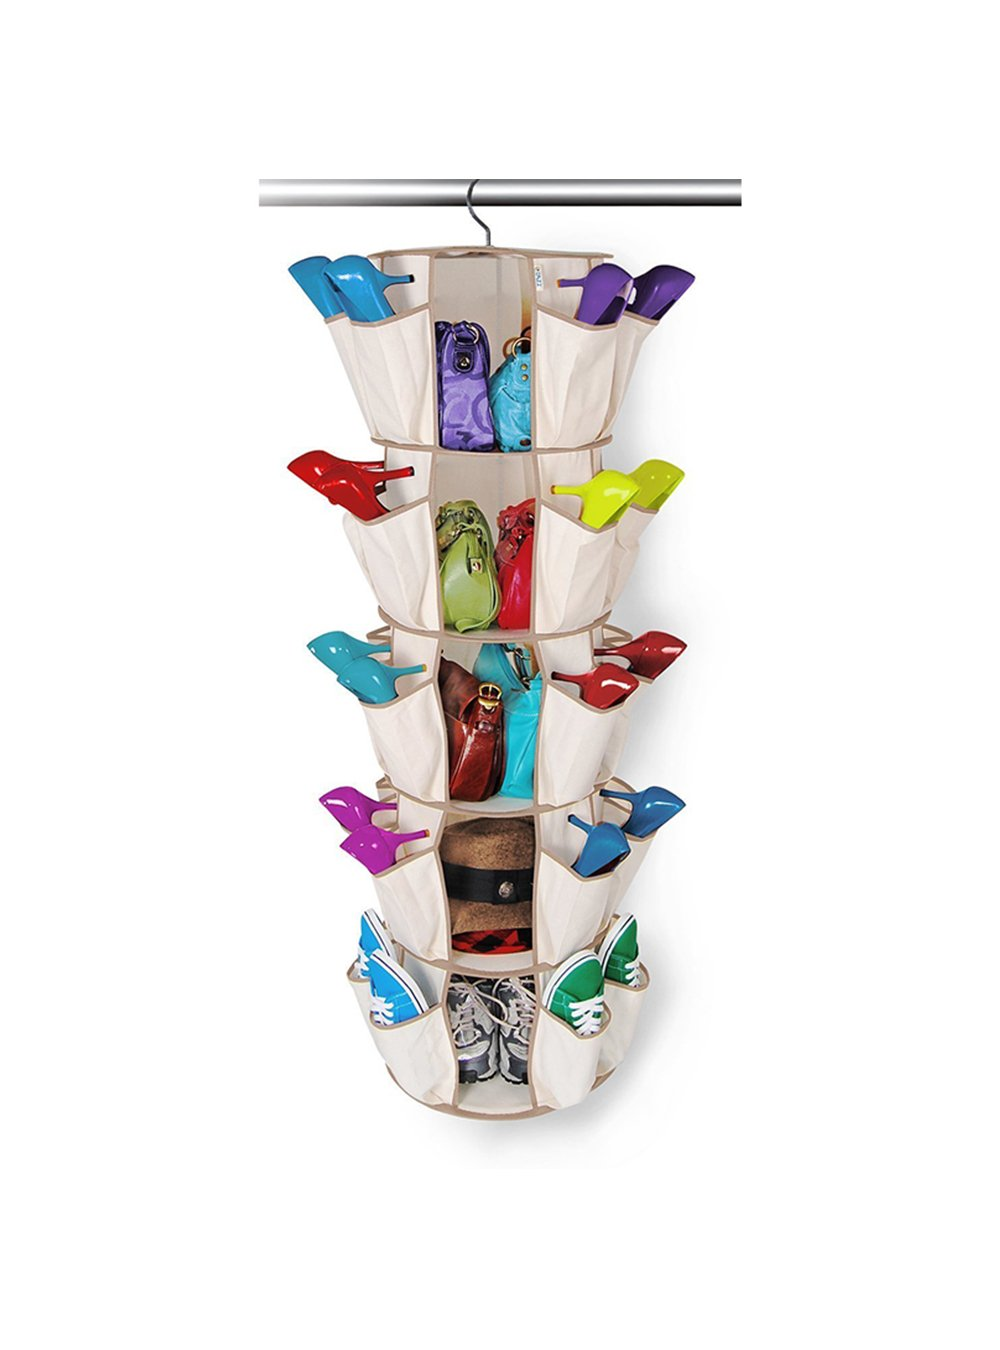 OAIMYY 40 Pockets Carousel Shoes Organizer 5-Tier Collapsible Closet Hanging Shelves Storage with 360° Swivel Hook (Beige, 40 Pockets)